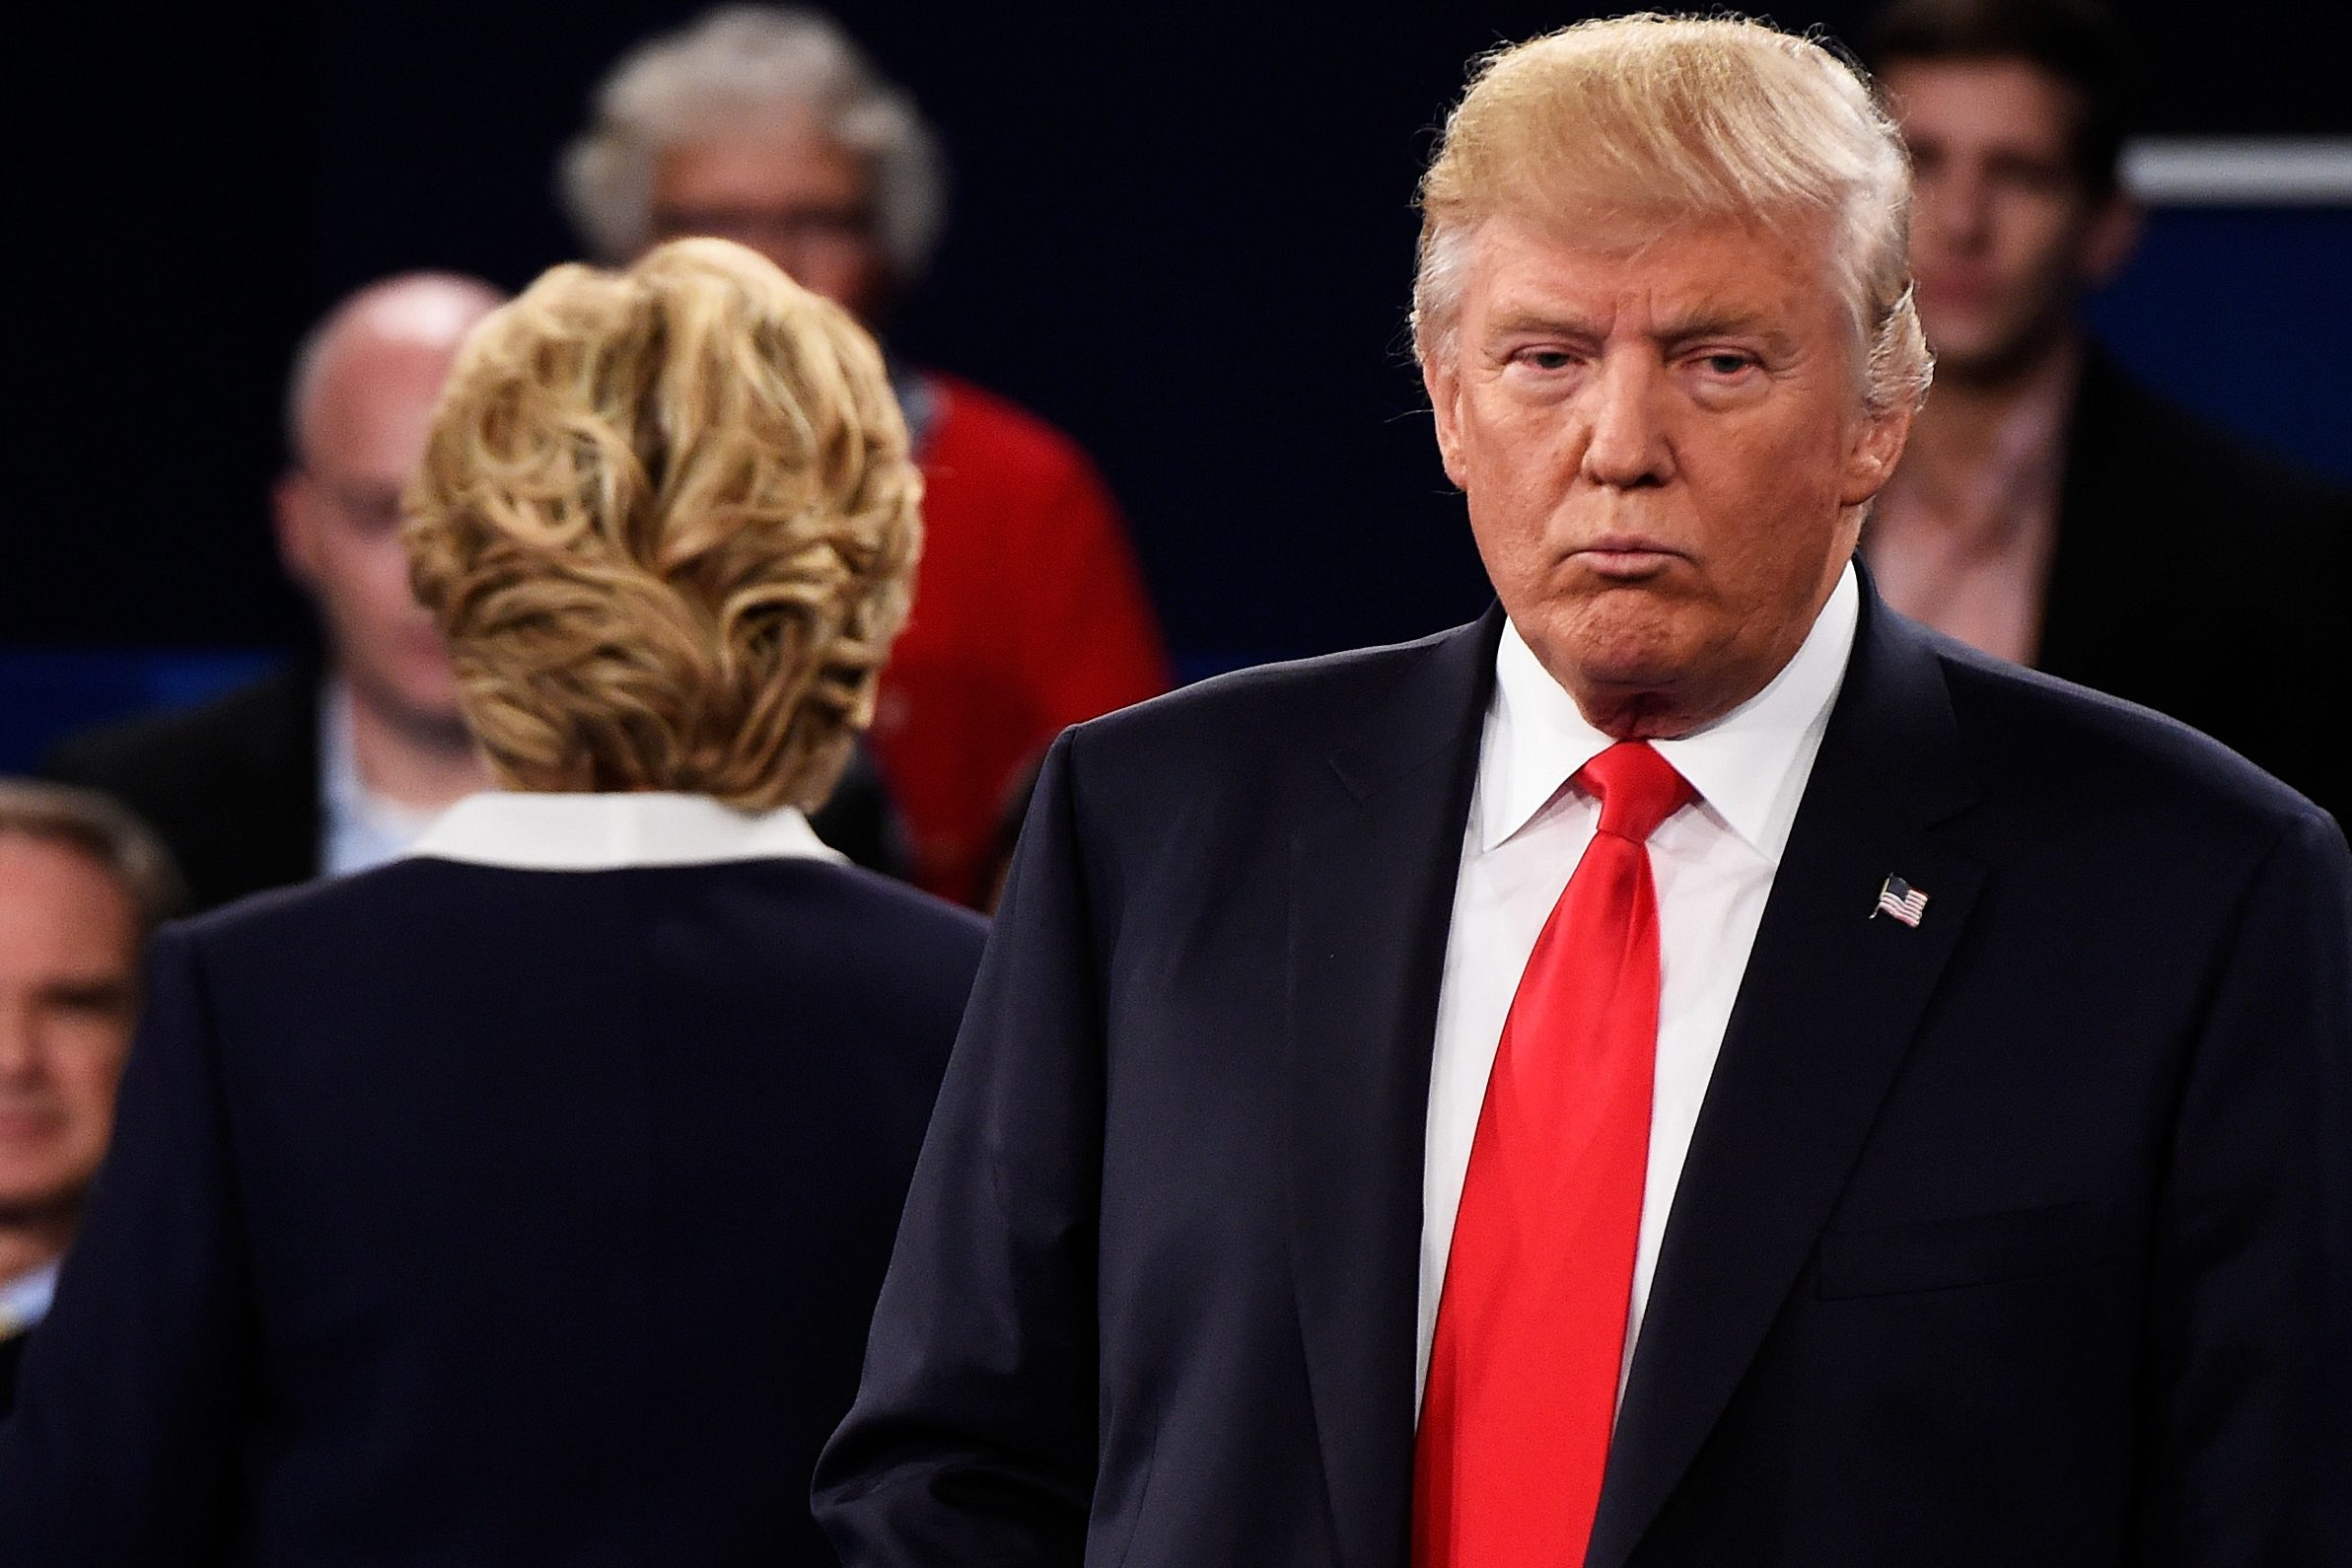 ST LOUIS, MO - OCTOBER 09:  Democratic presidential nominee former Secretary of State Hillary Clinton (L) and Republican presidential nominee Donald Trump listen to a question during the town hall debate at Washington University on October 9, 2016 in St Louis, Missouri. This is the second of three presidential debates scheduled prior to the November 8th election.  (Photo by Saul Loeb-Pool/Getty Images)